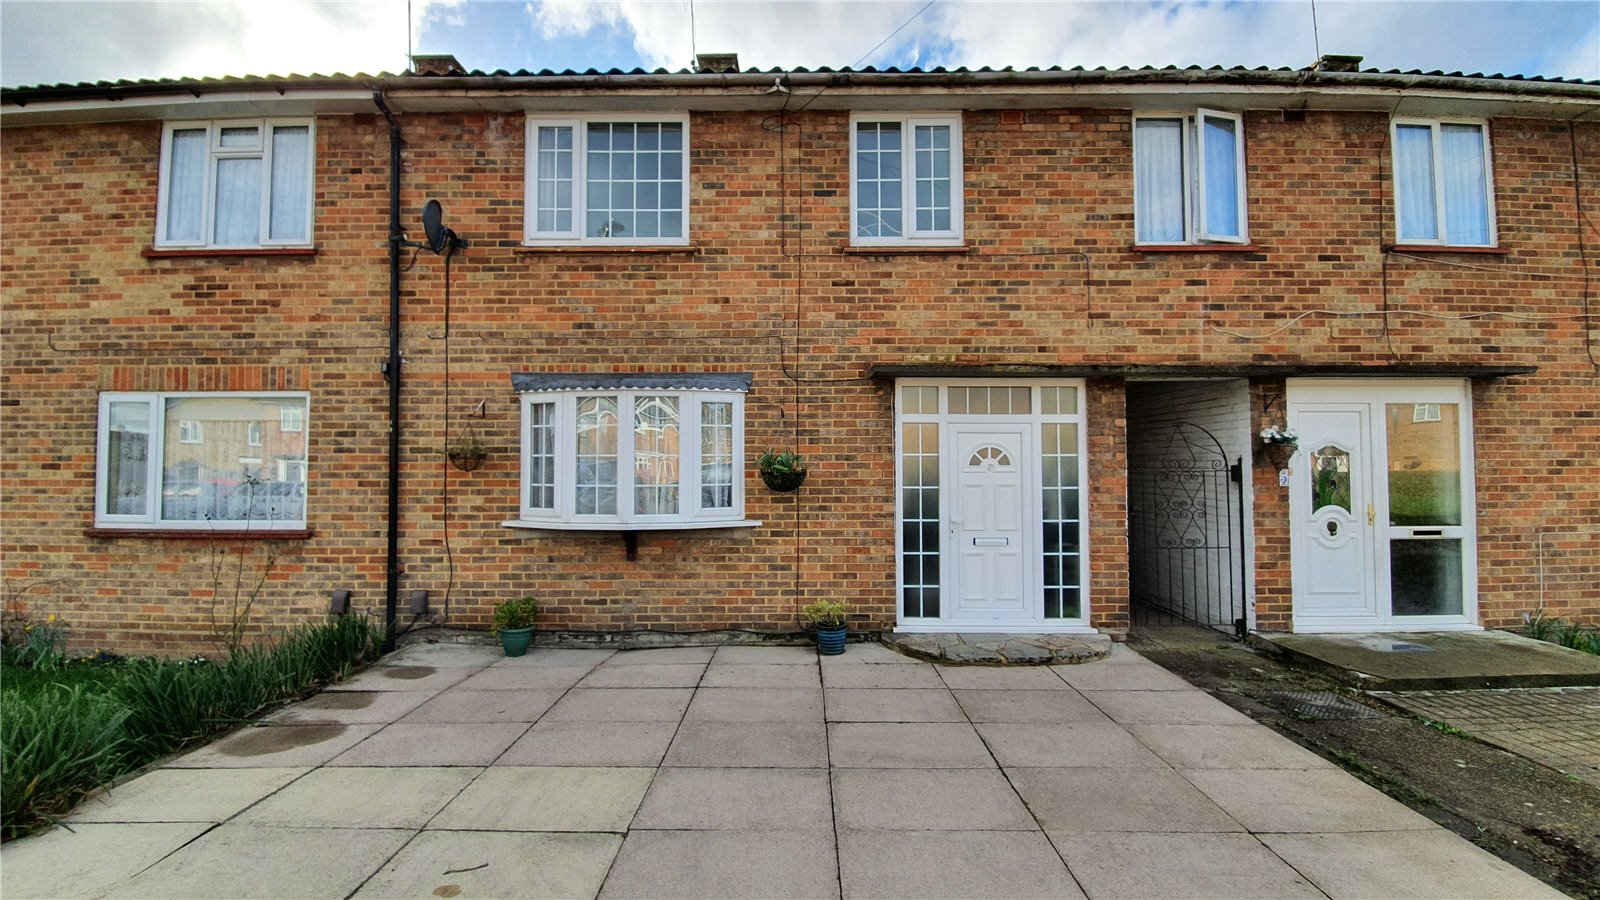 3 bed house for sale in Edgware, HA8 8XT, HA8